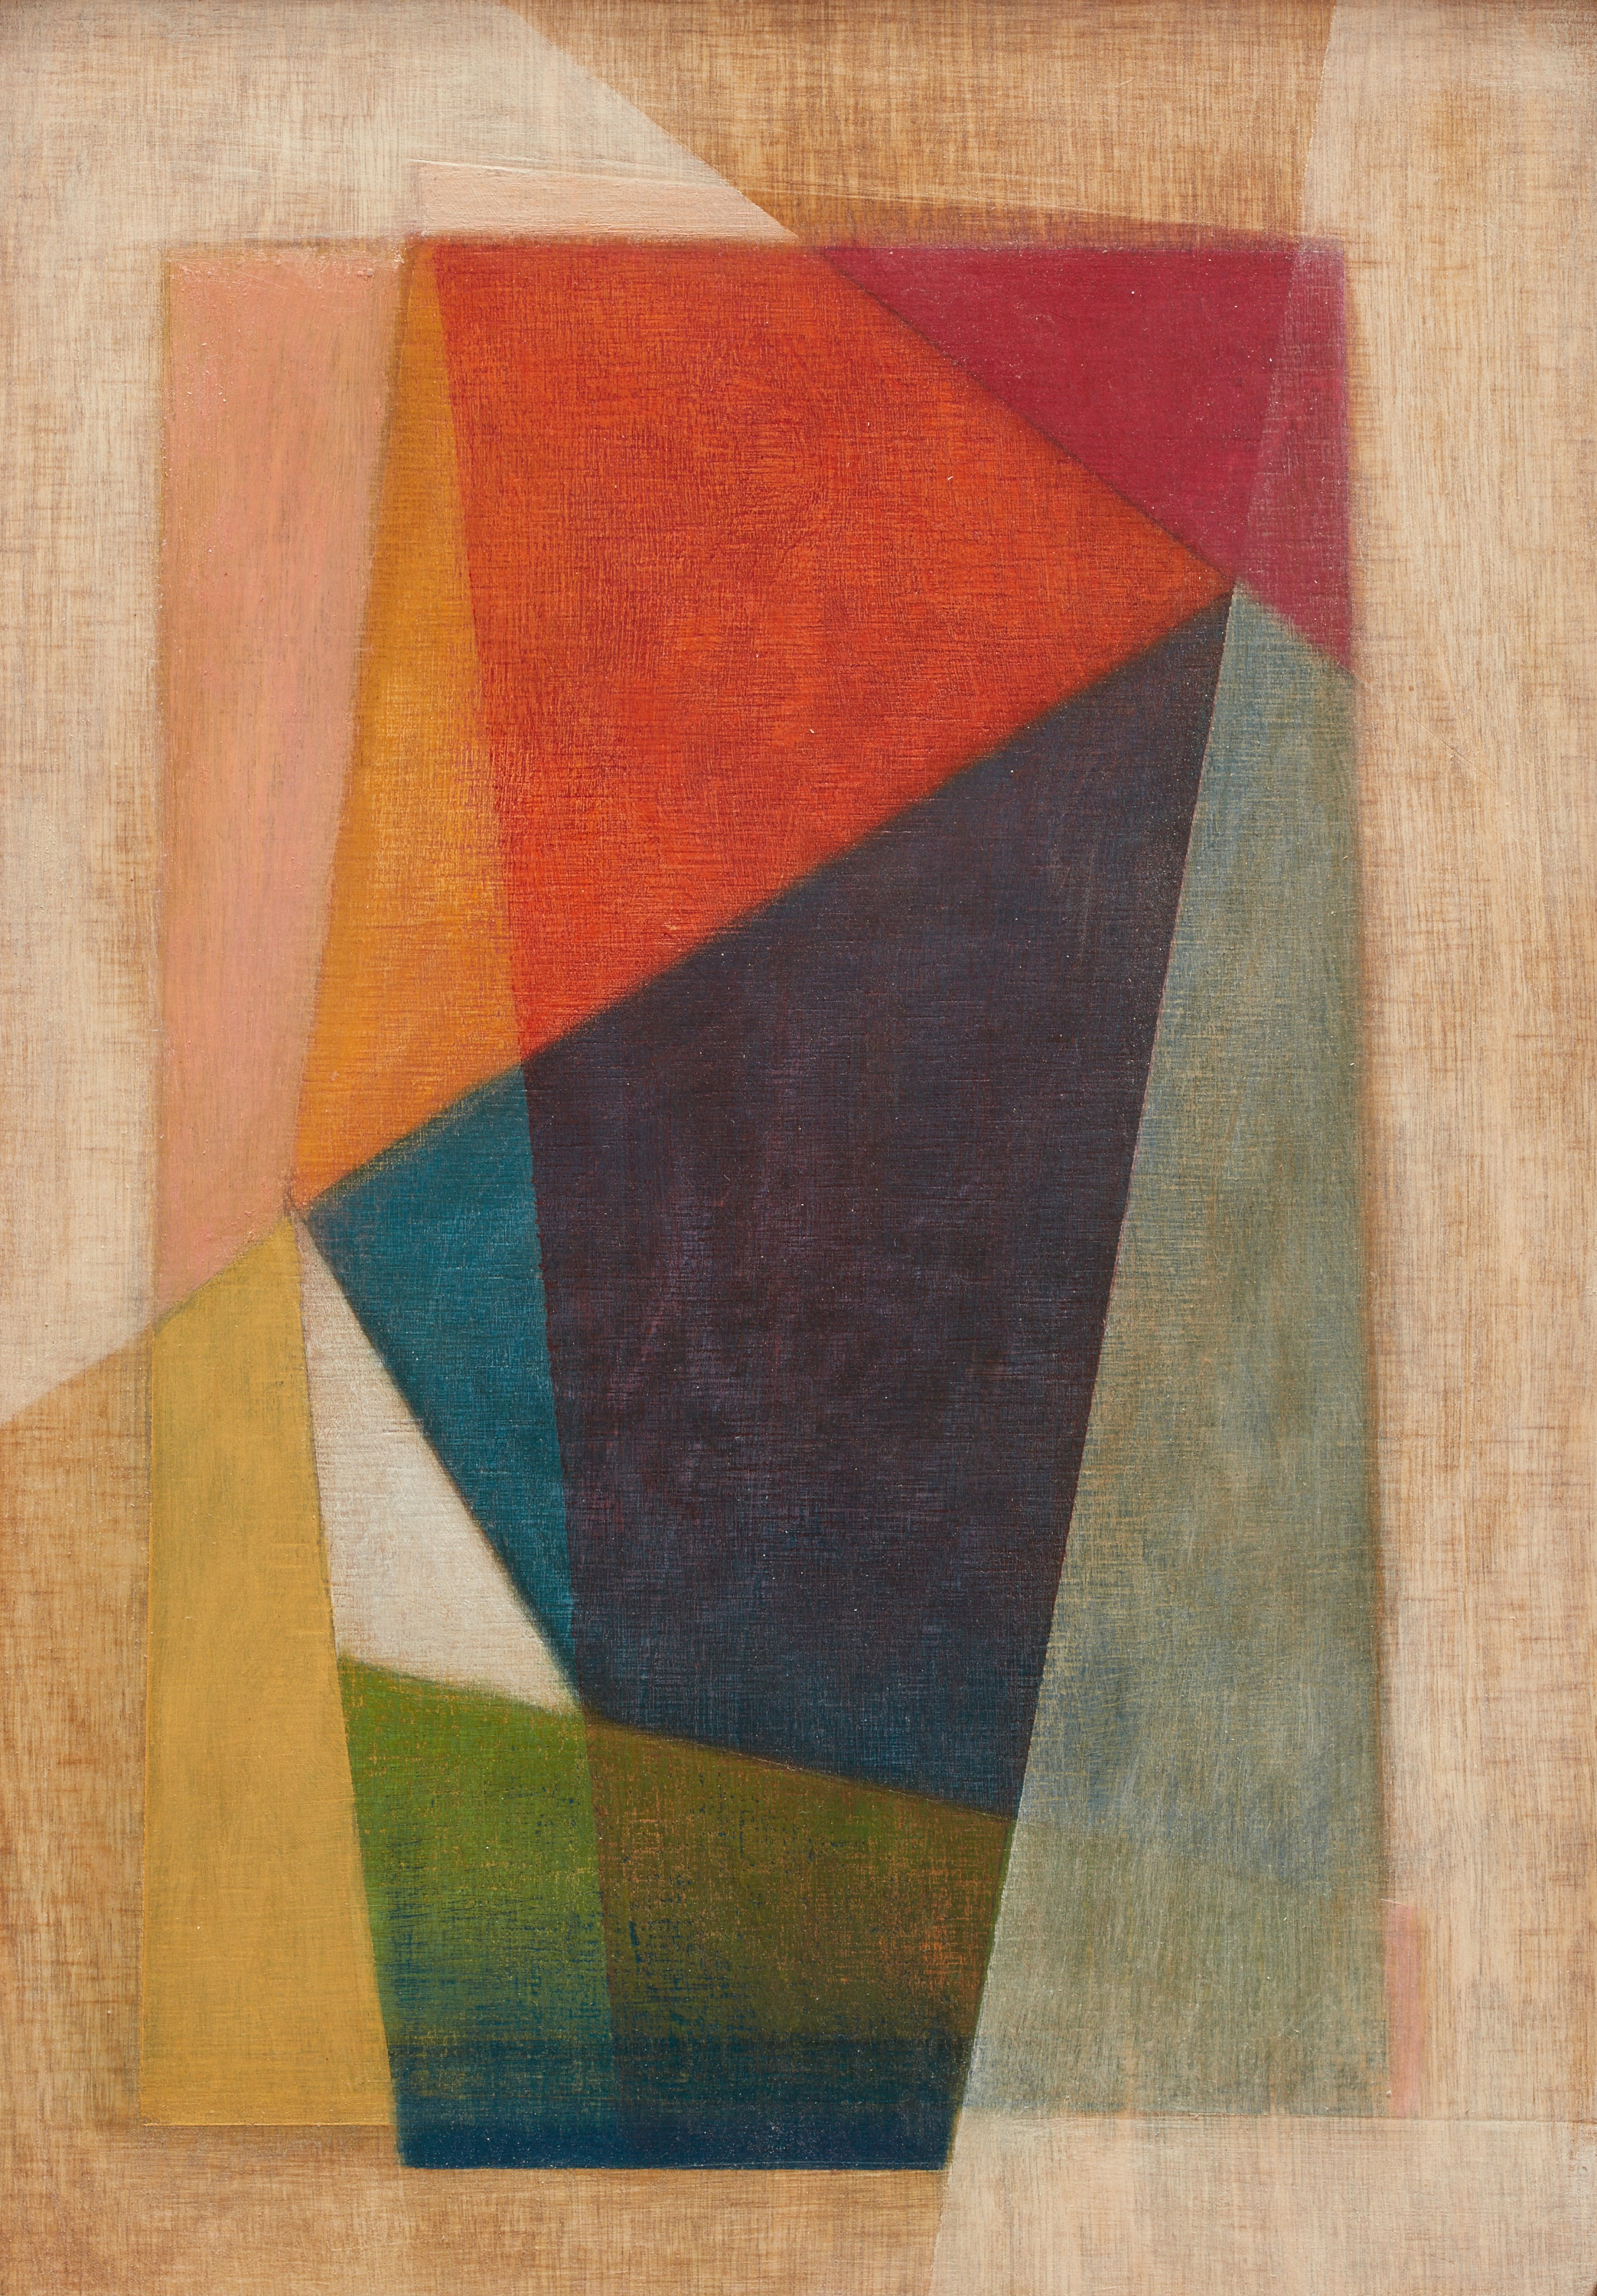 Small Geometric Abstraction III.25x30cms oil on ply 2106